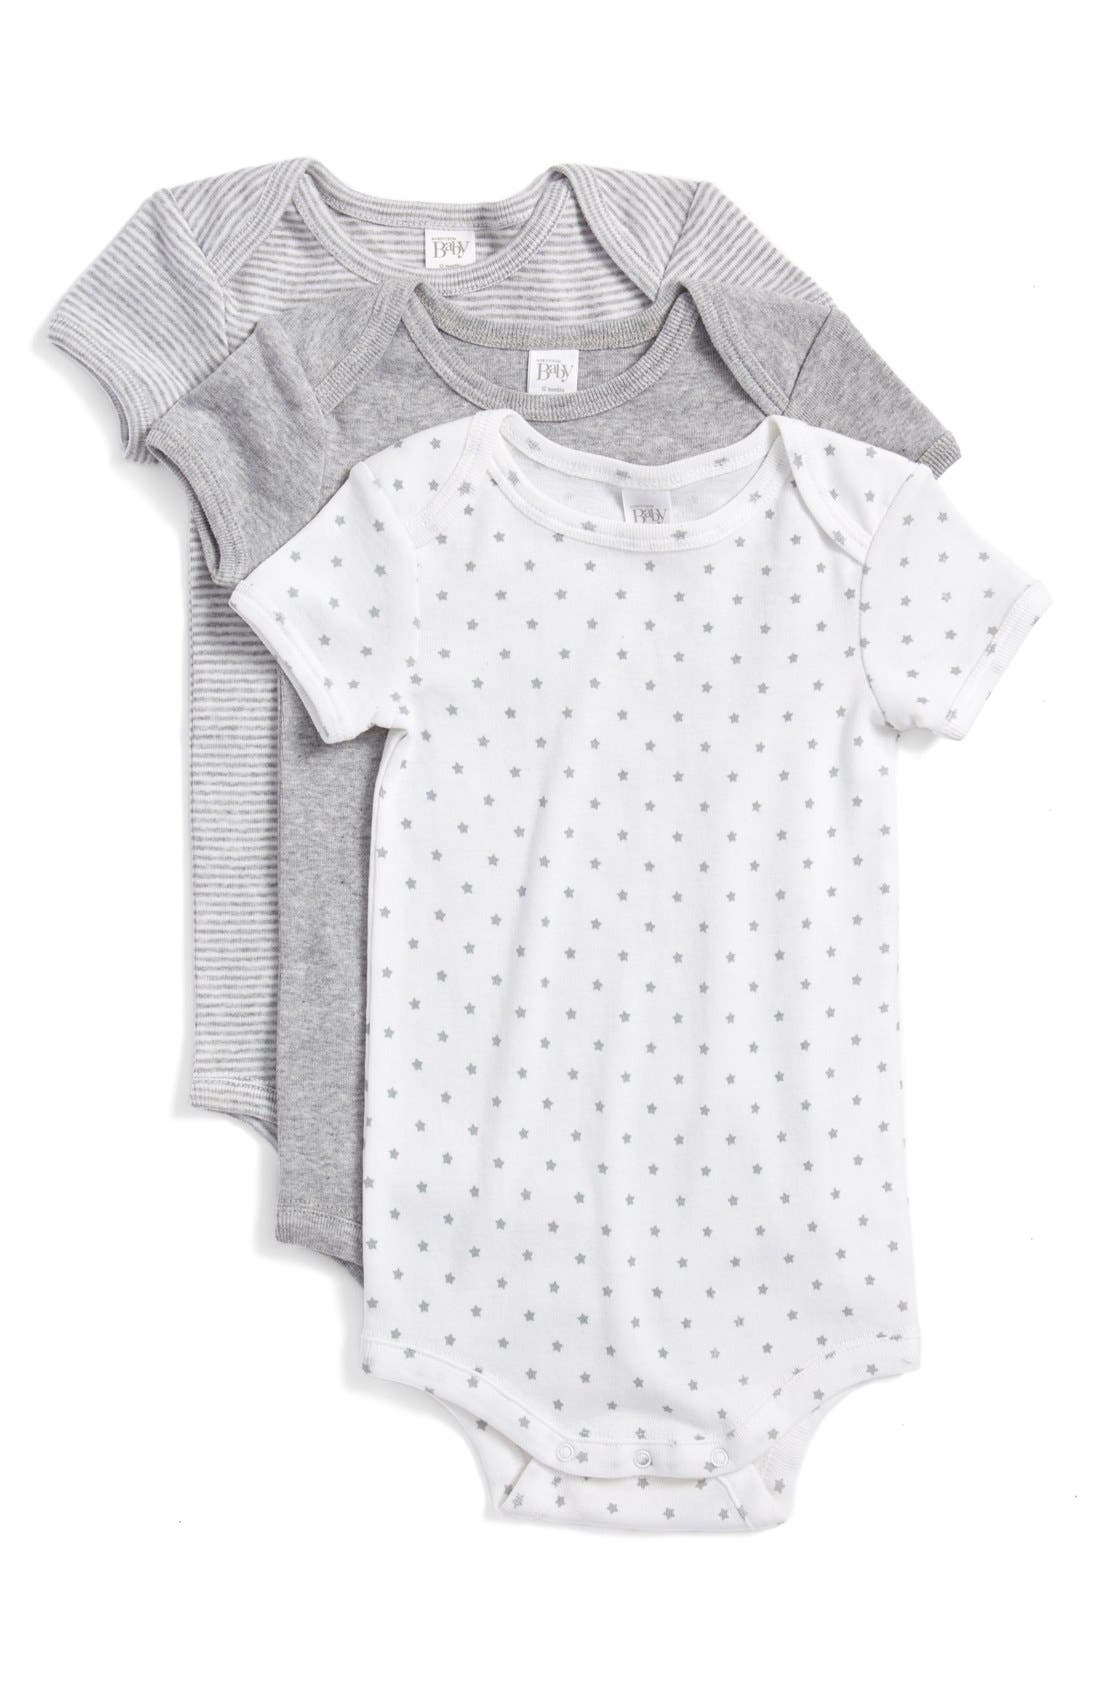 Main Image - Nordstrom Baby Cotton Bodysuits (3-Pack) (Baby)